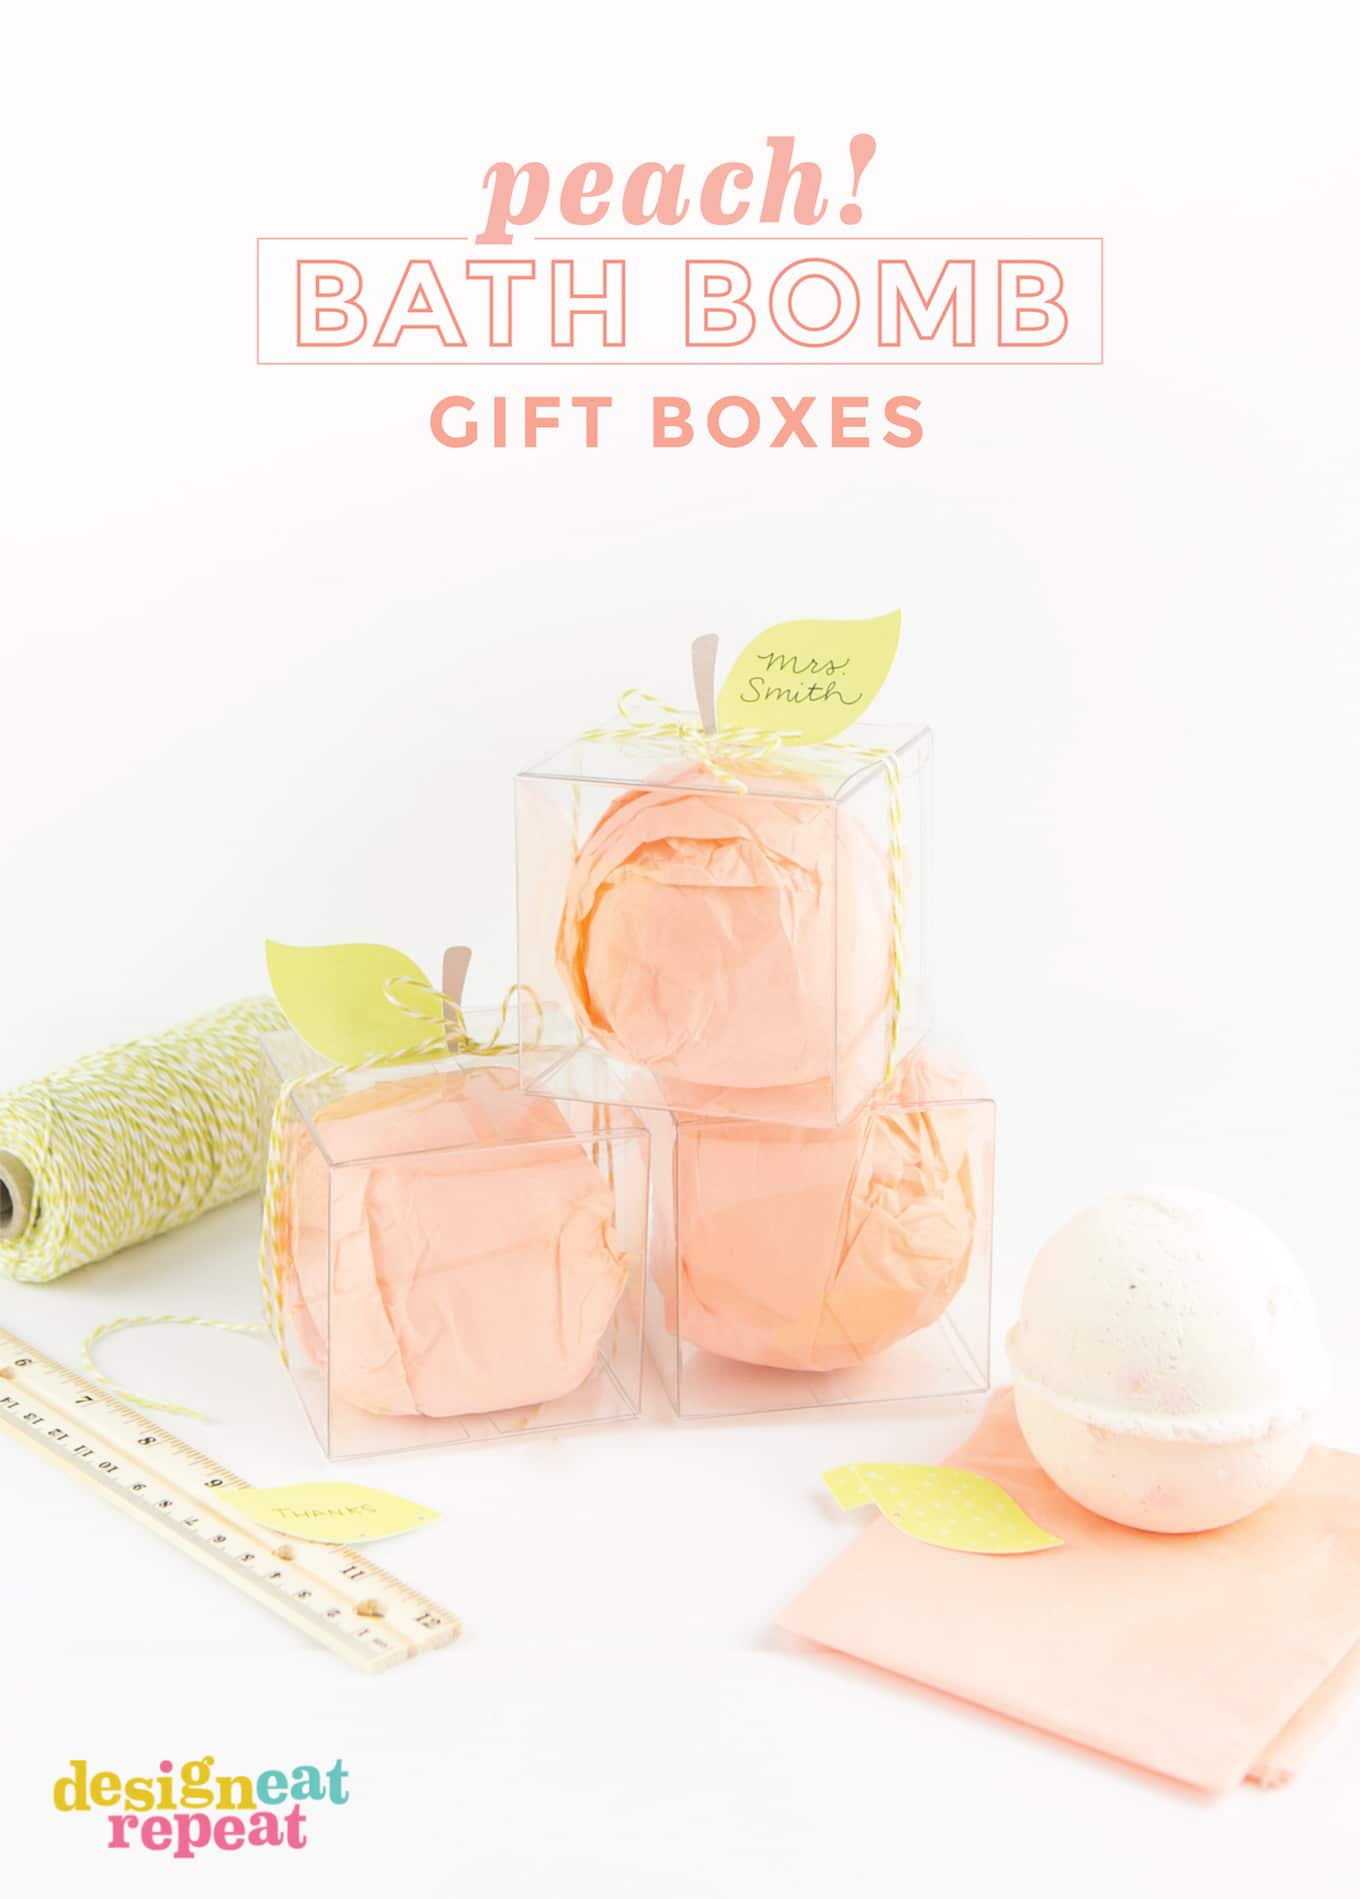 With back to school just around the corner, give the gift of relaxation with this peachy bath bomb teacher gift idea! Also great for thank you gifts, southern wedding party favors, or fruit party favors!